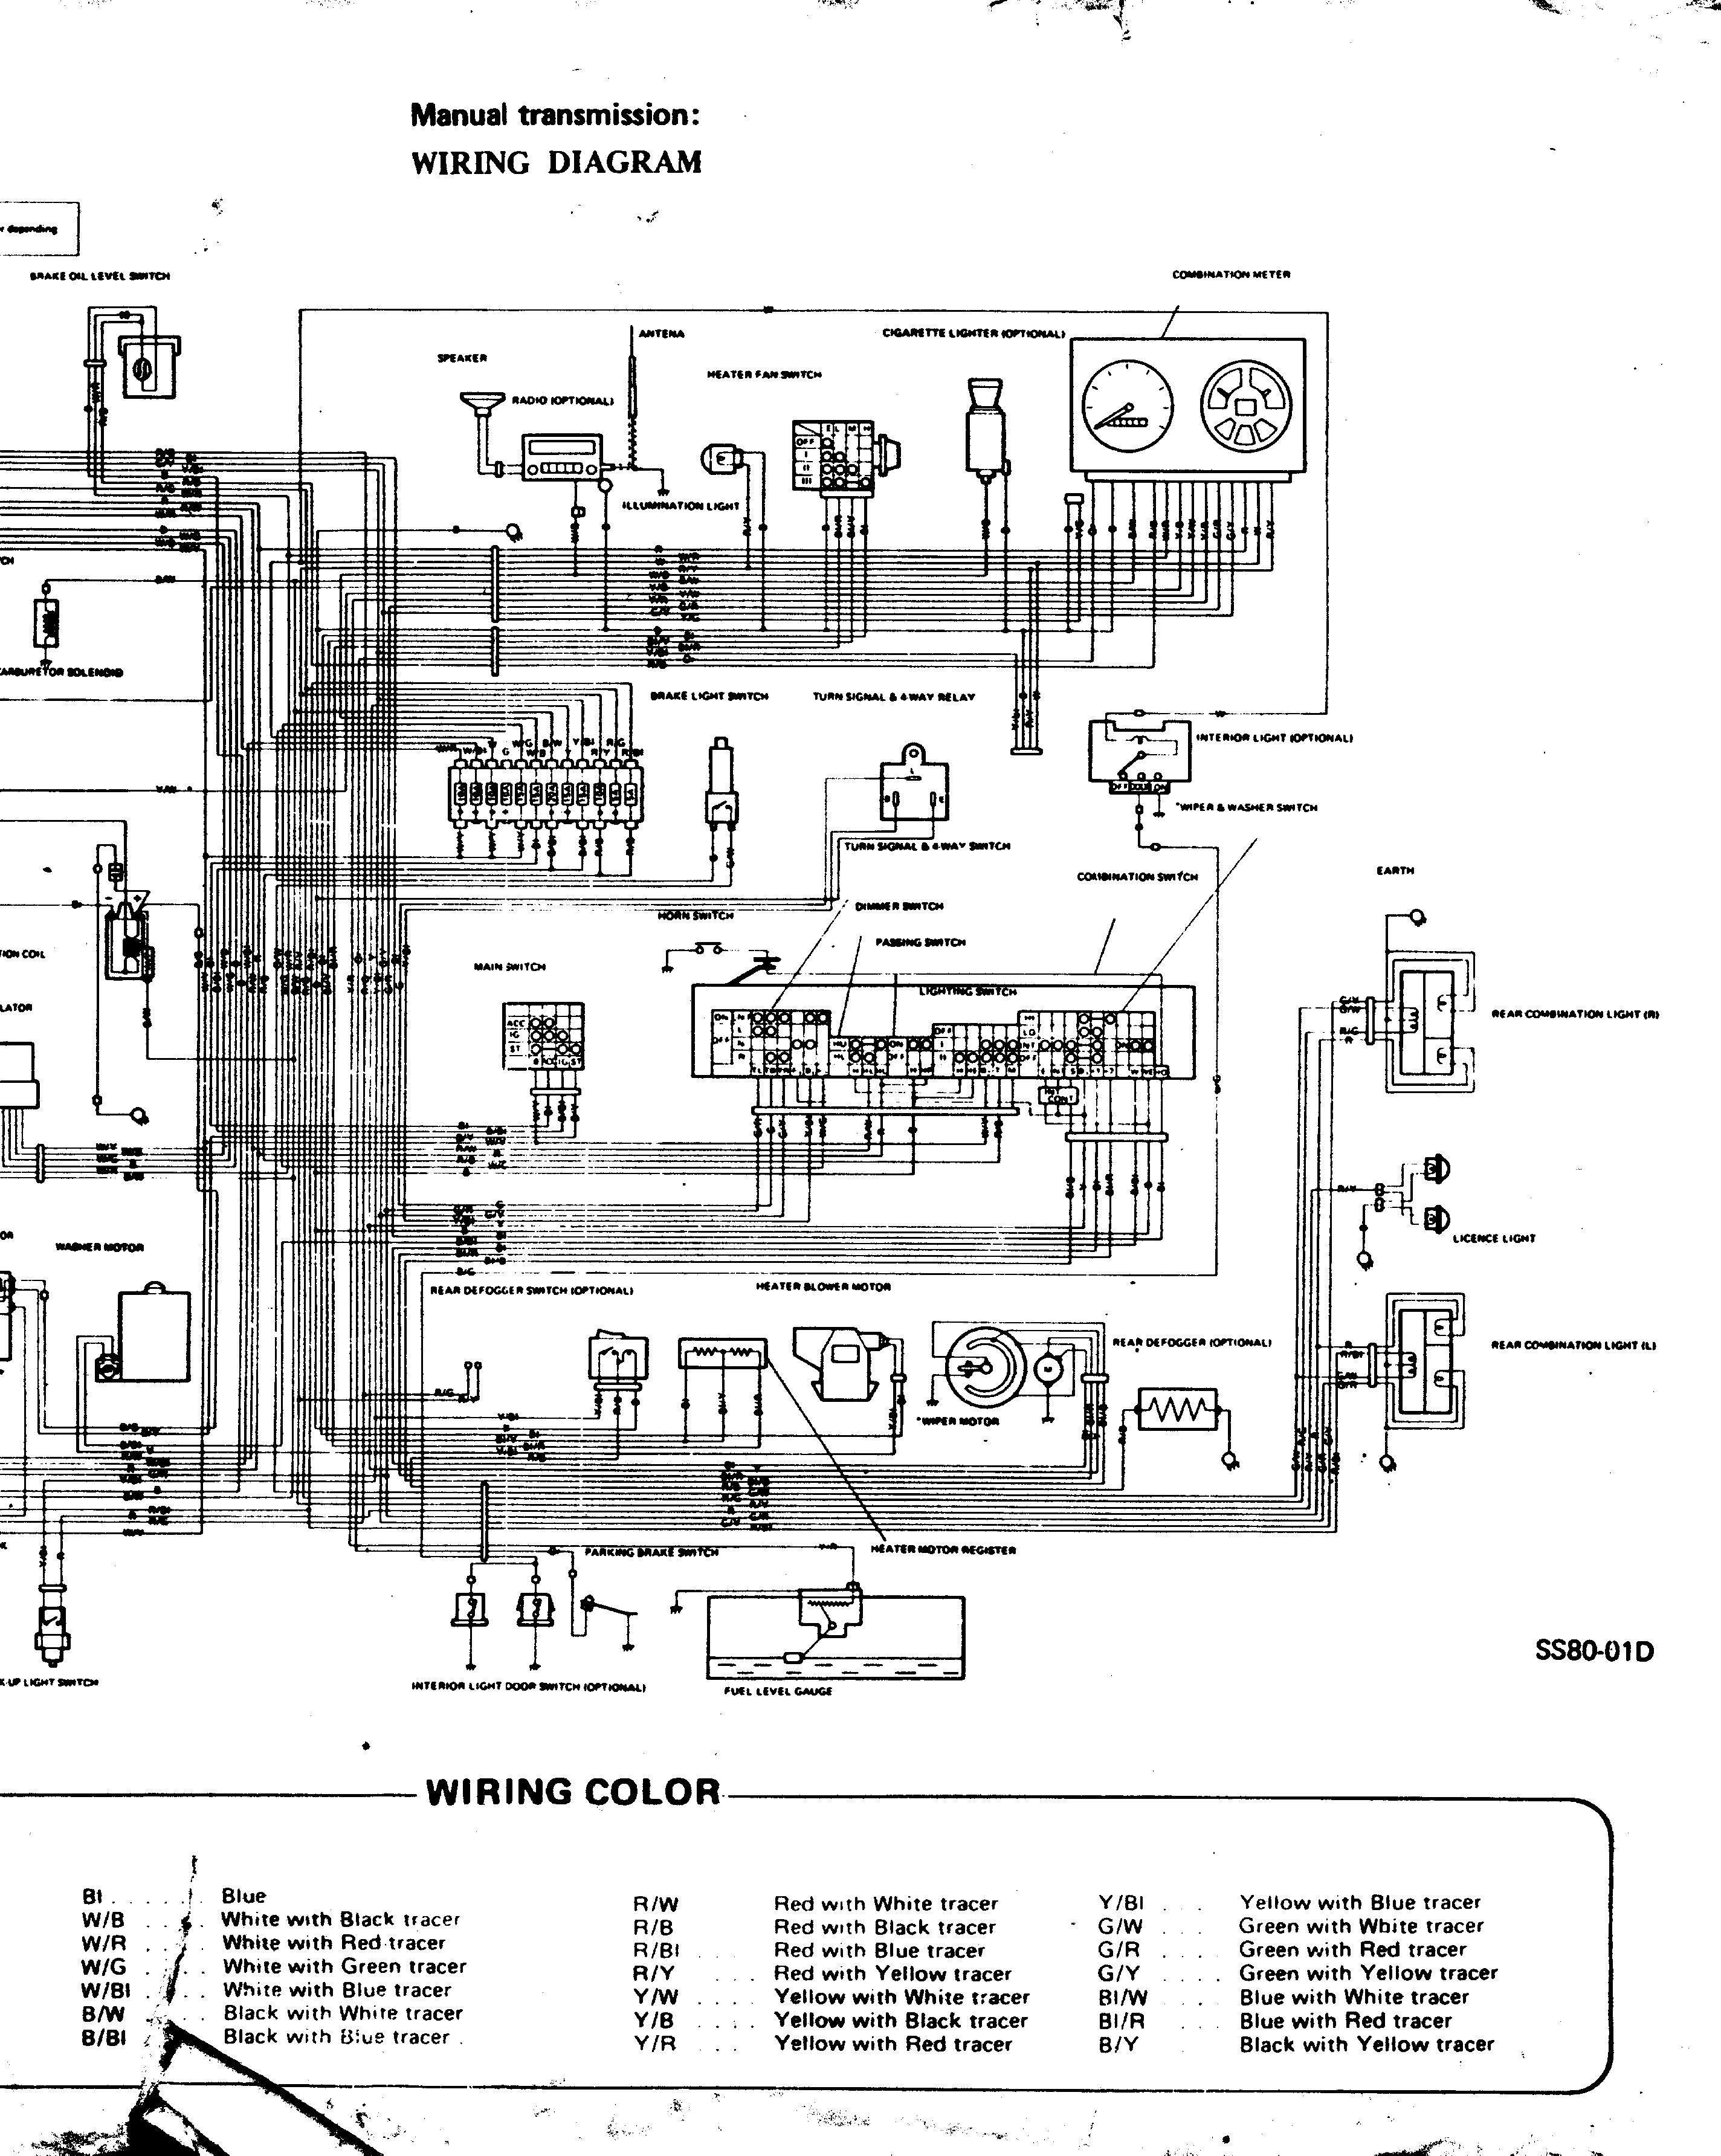 sp 125 wiring diagram wiring diagram